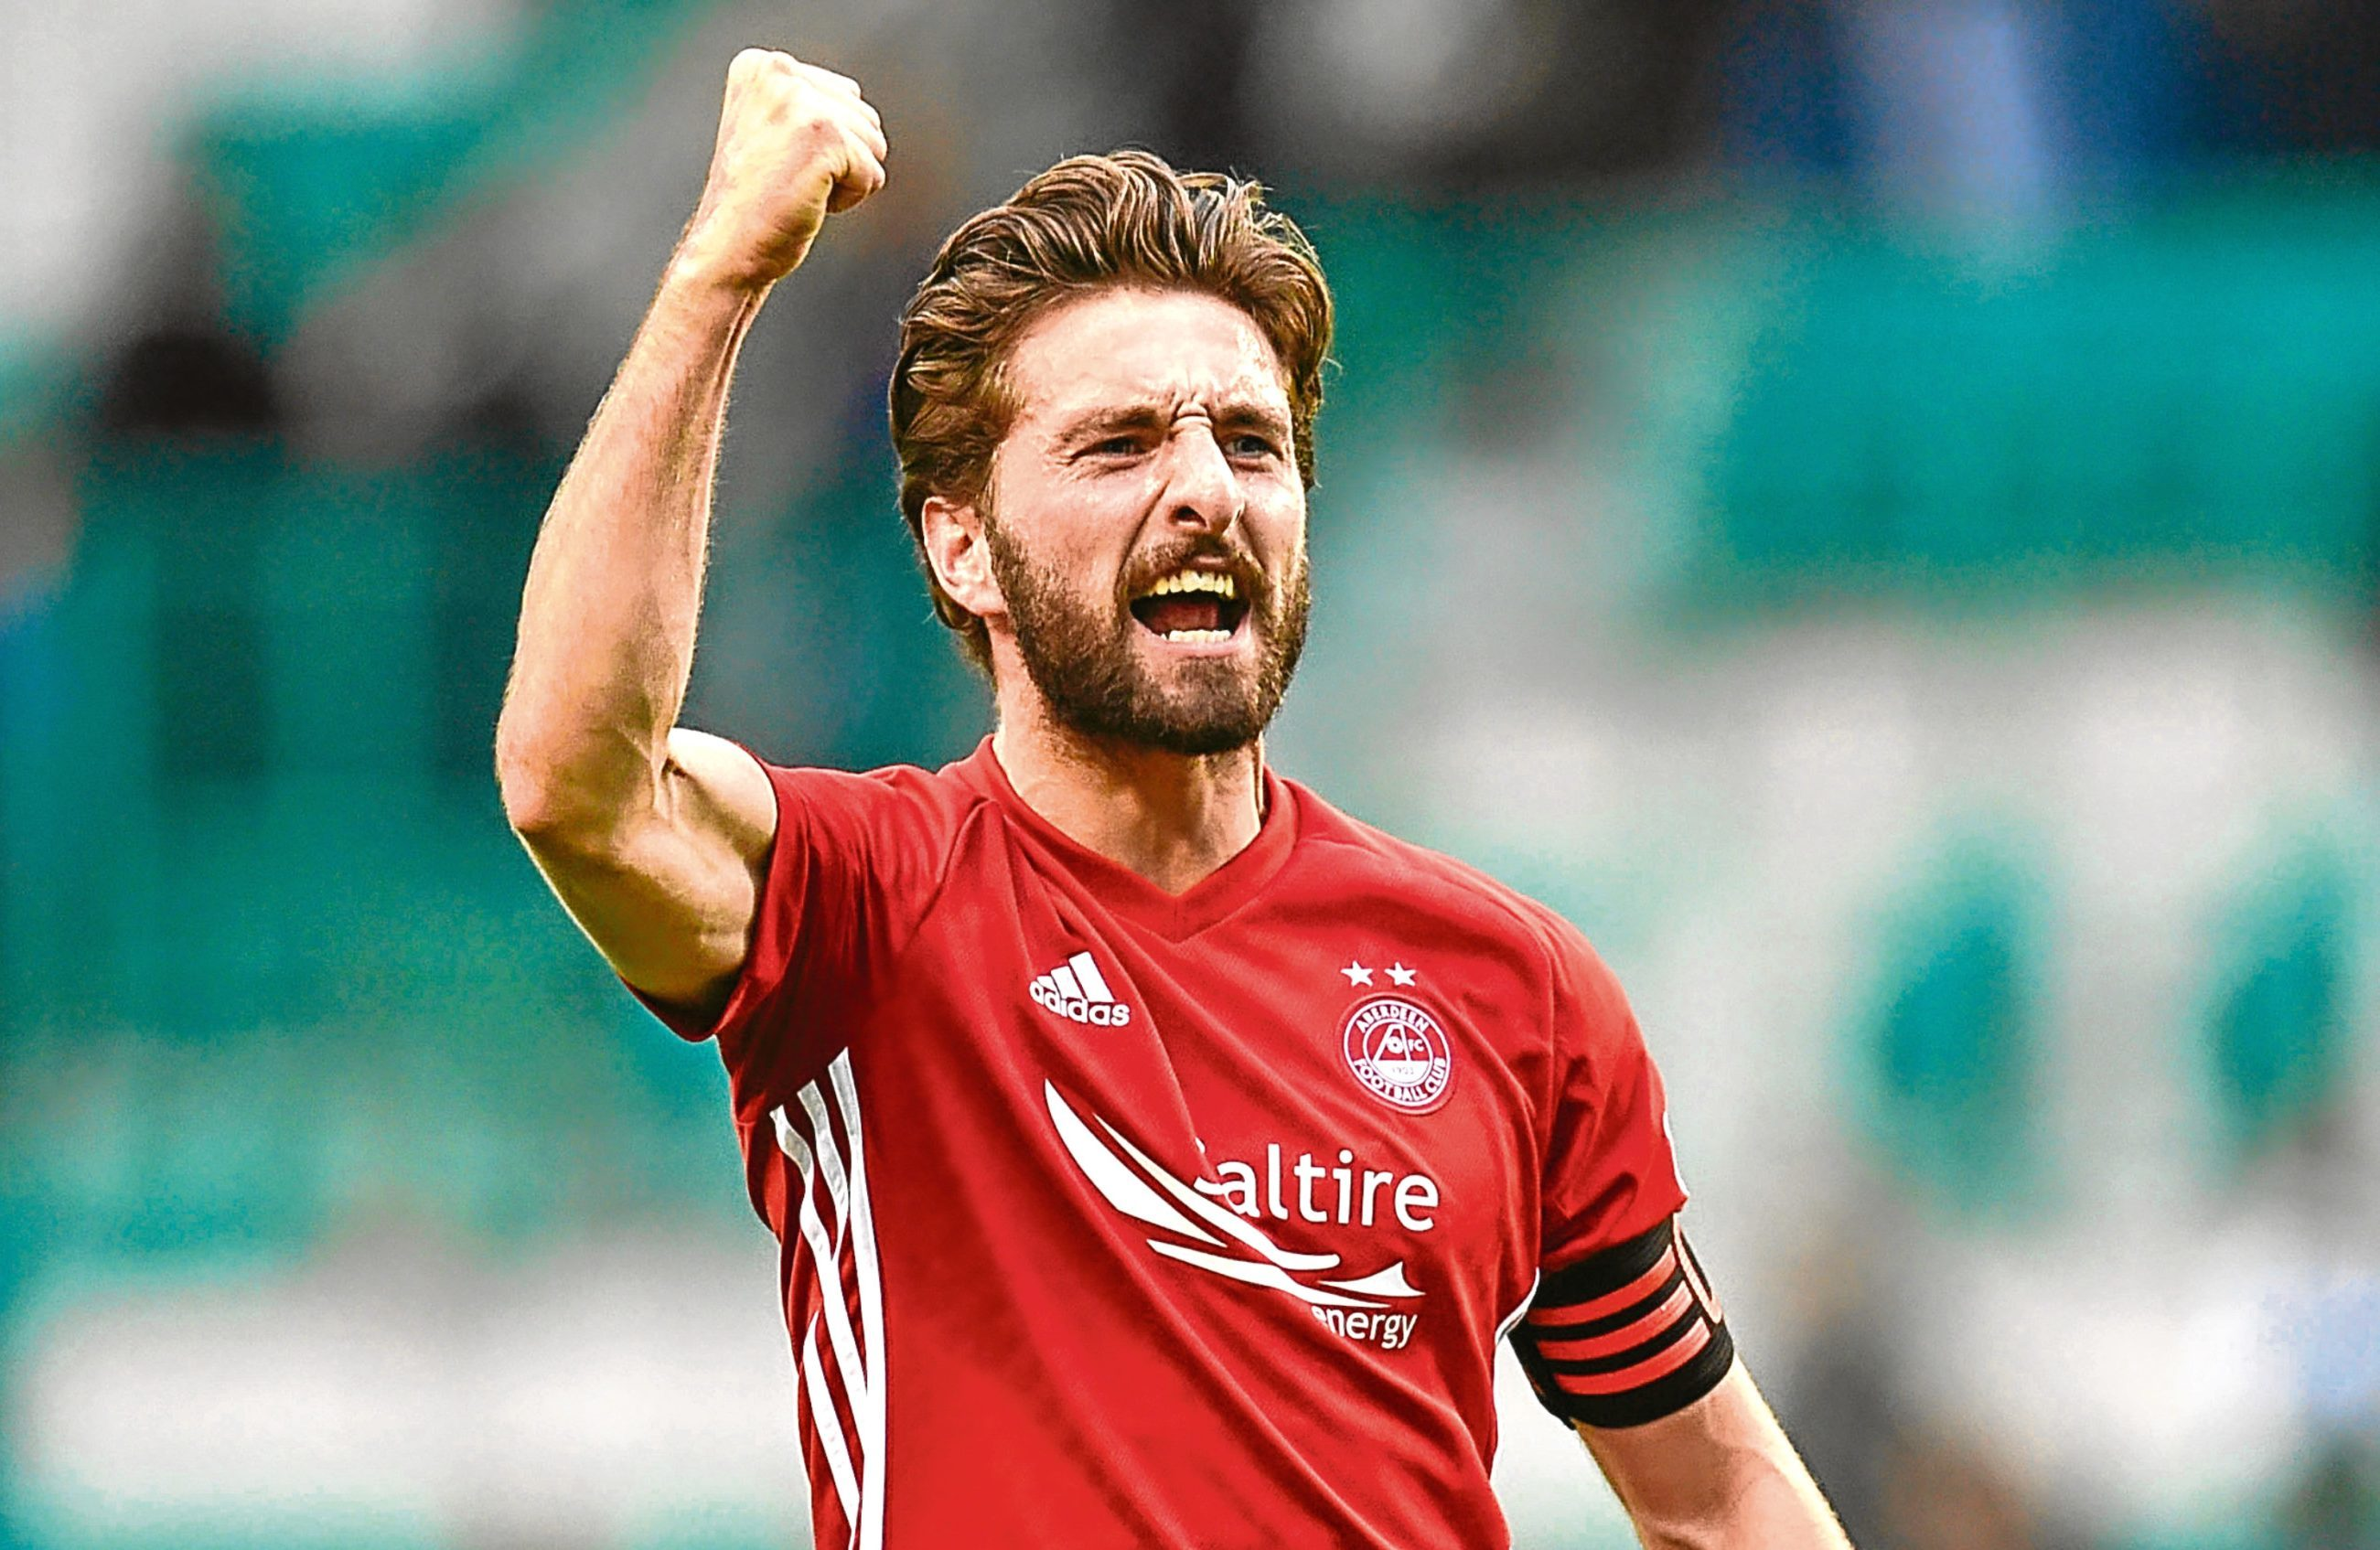 Aberdeen captain Graeme Shinnie is back in the squad after suspension.